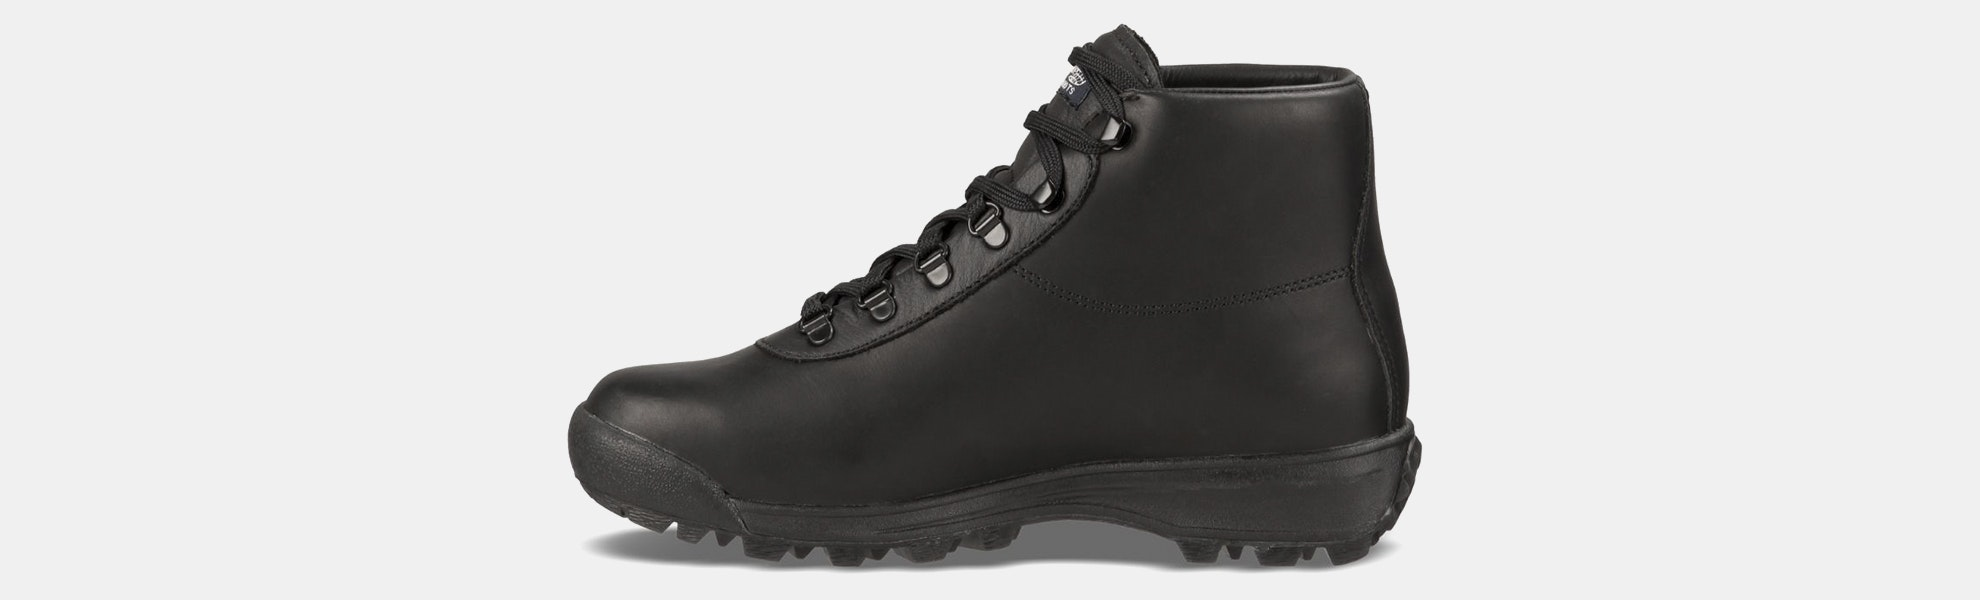 Vasque Men's Sundowner GTX Hiking Boots